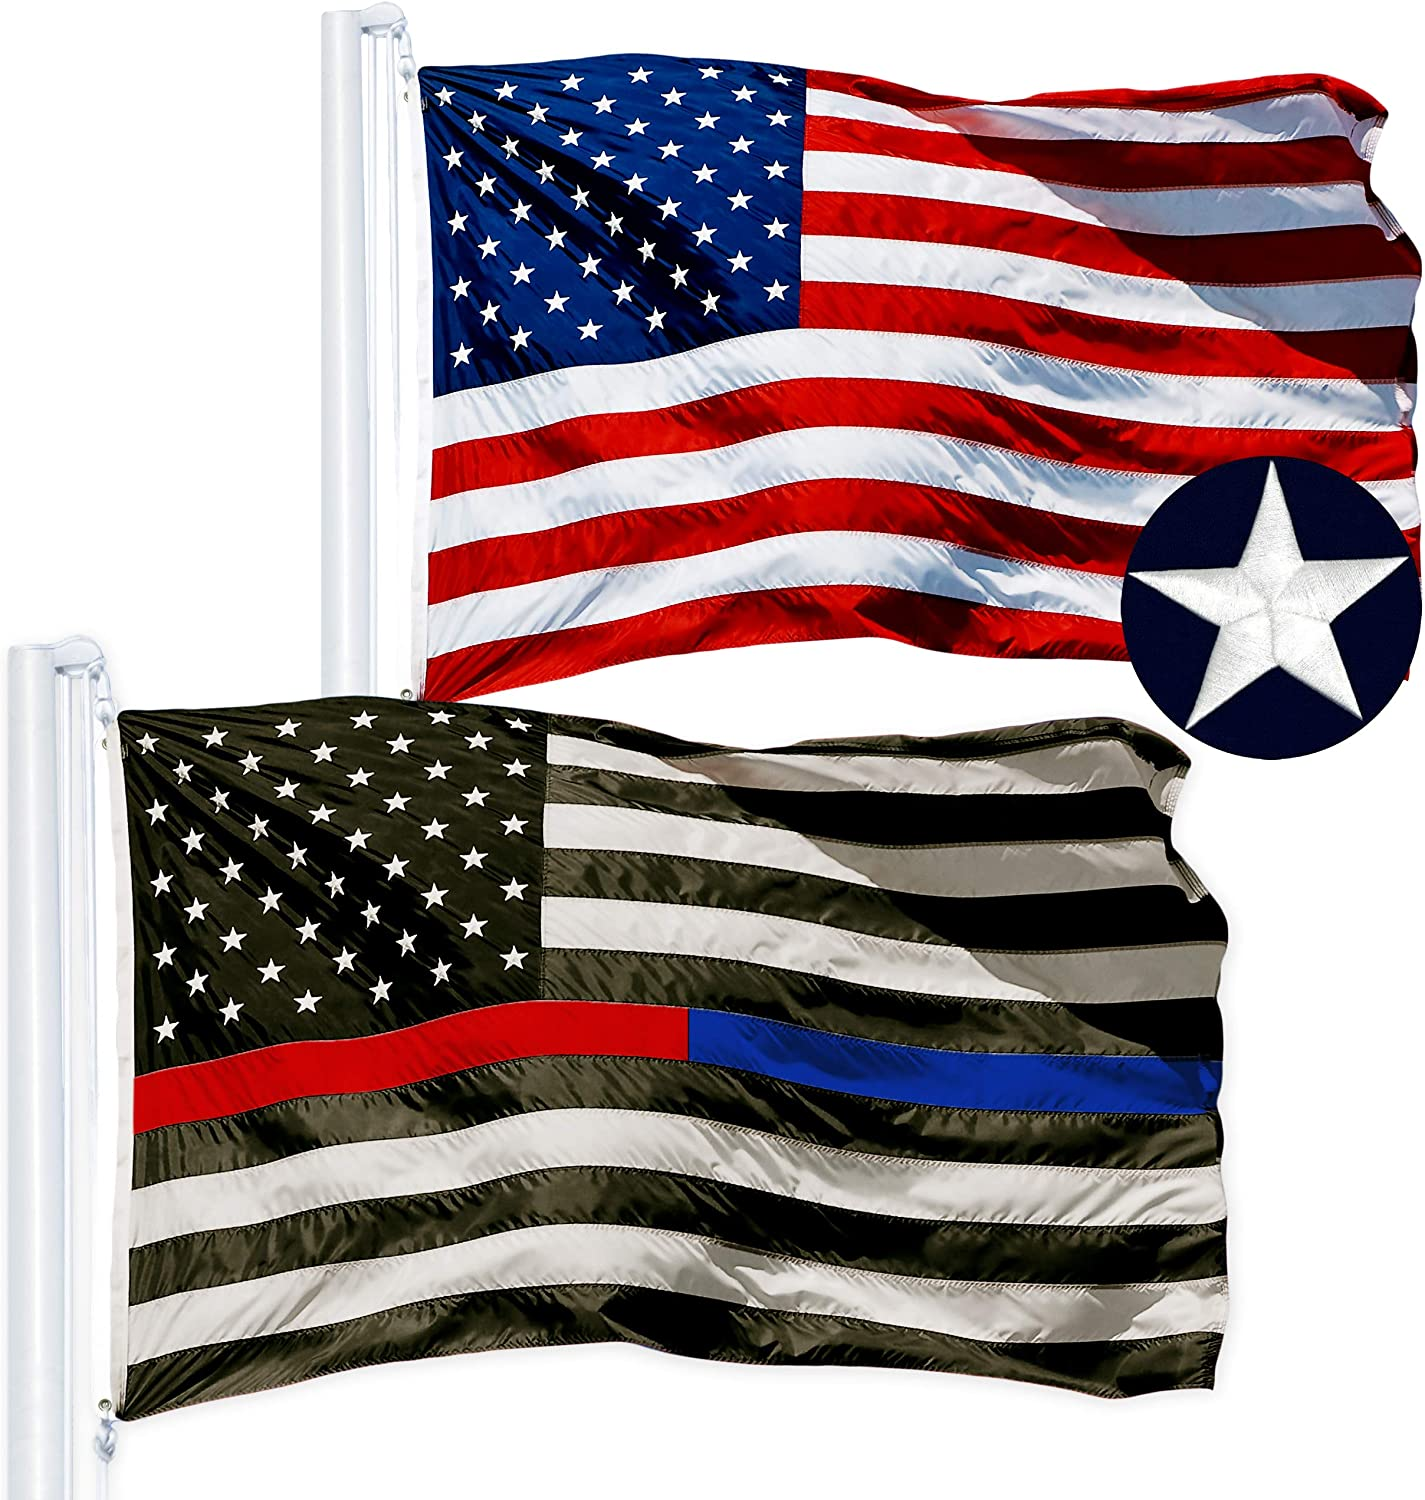 G128 Brand Cheap Sale Venue Combo Pack: USA American Flag Th Over item handling Embroidered Ft 3x5 Stars